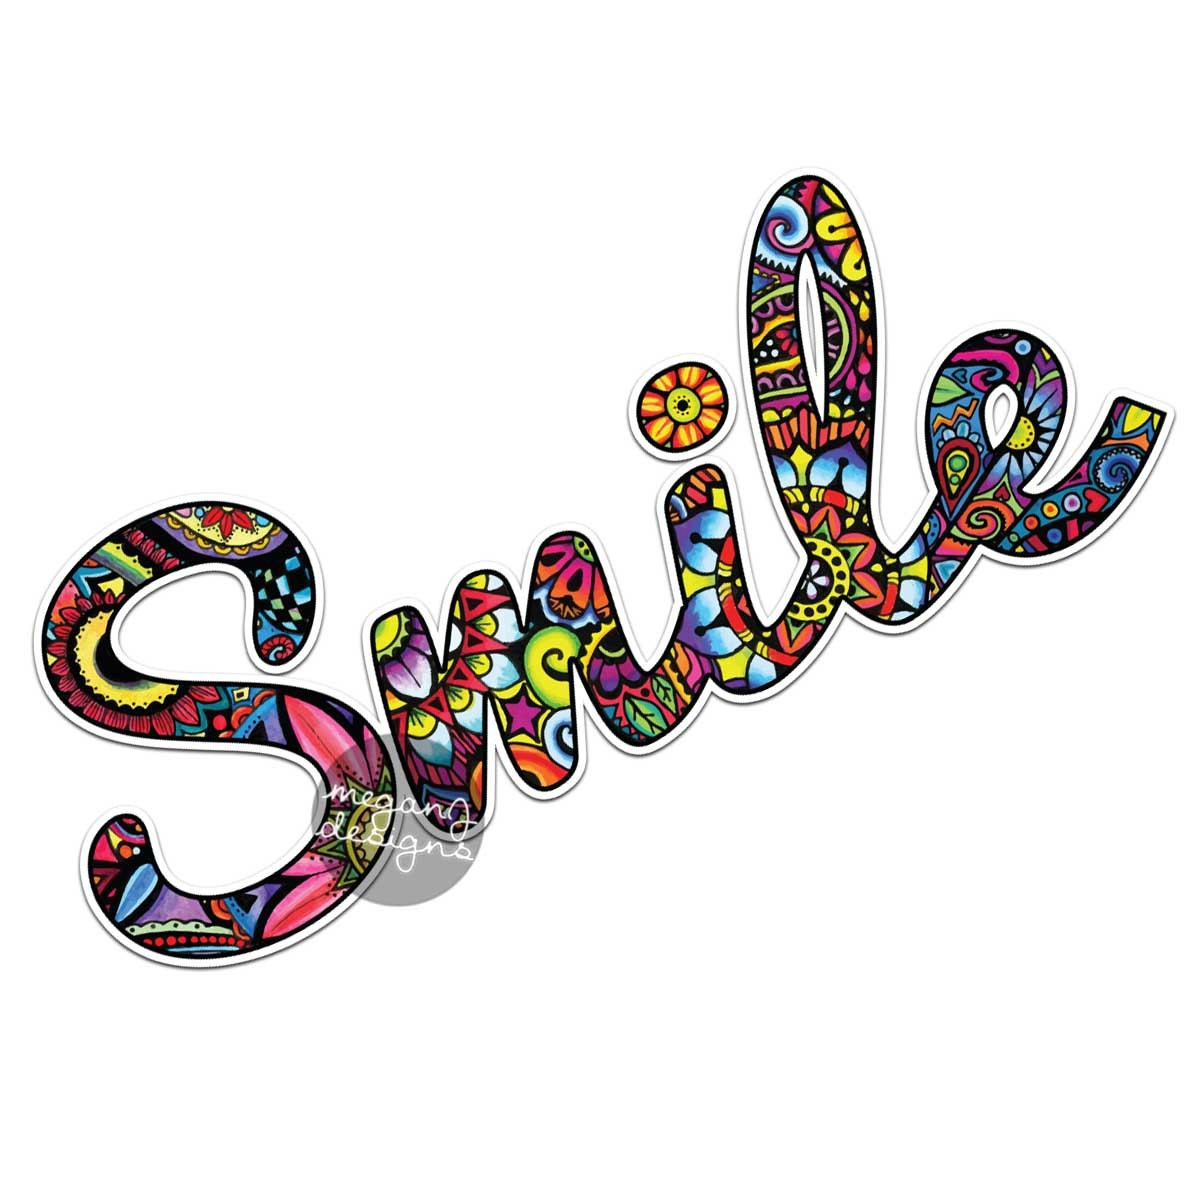 Wall Stickers How To Apply Smile Sticker Colorful Design Bumper Sticker Laptop Decal